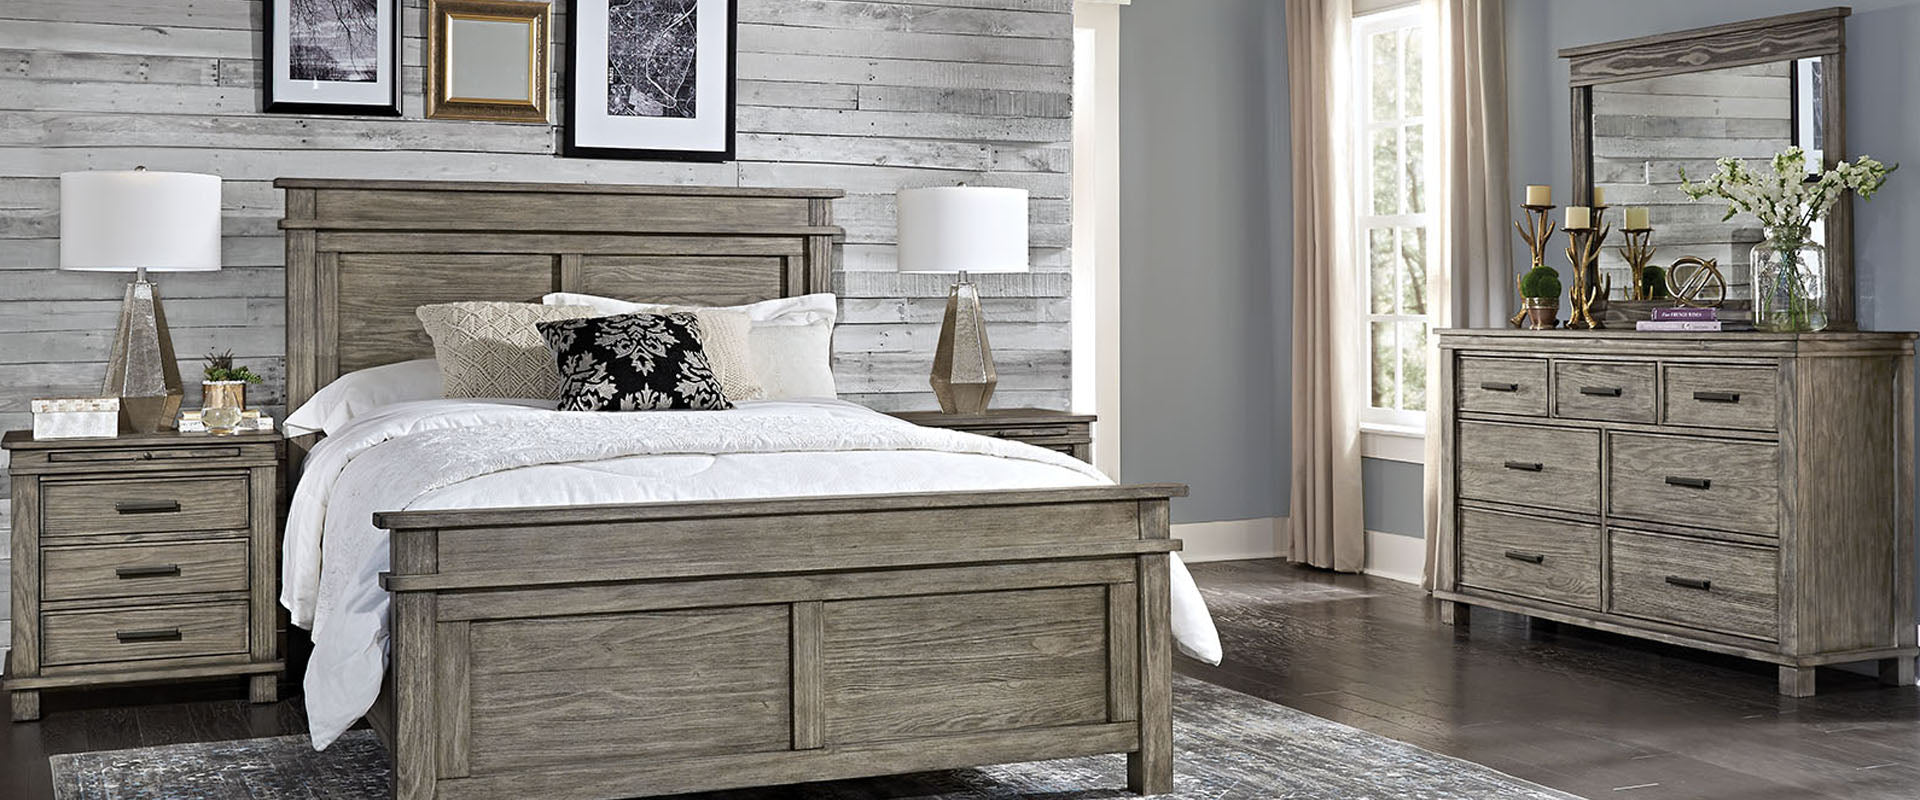 vancouver woodworks wood furniture store portland vancouver camas